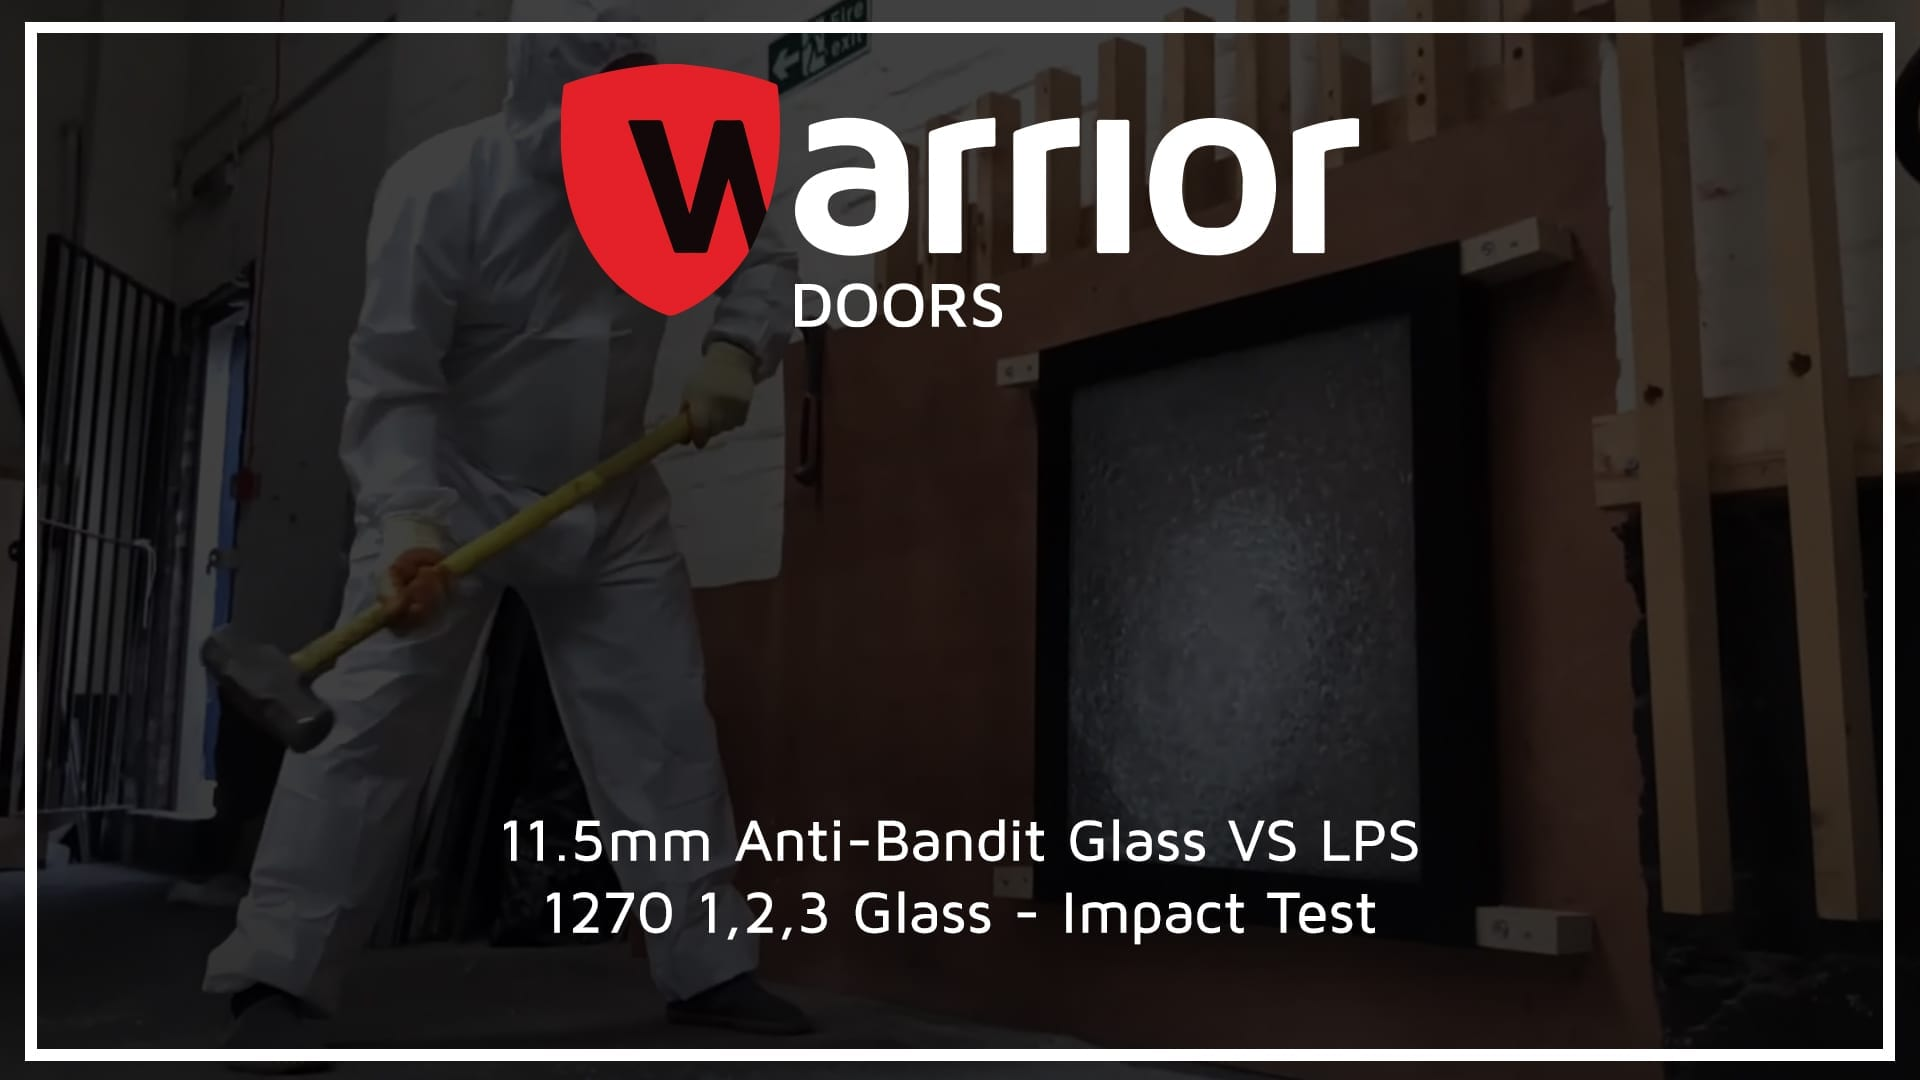 """man in protective suit smashing glass with a sledgehammer with Warrior Logo and tect reading """"11.5mm Anti-Bandit Glass VS LPS 1270 1,2,3 Glass - Impact Test"""""""